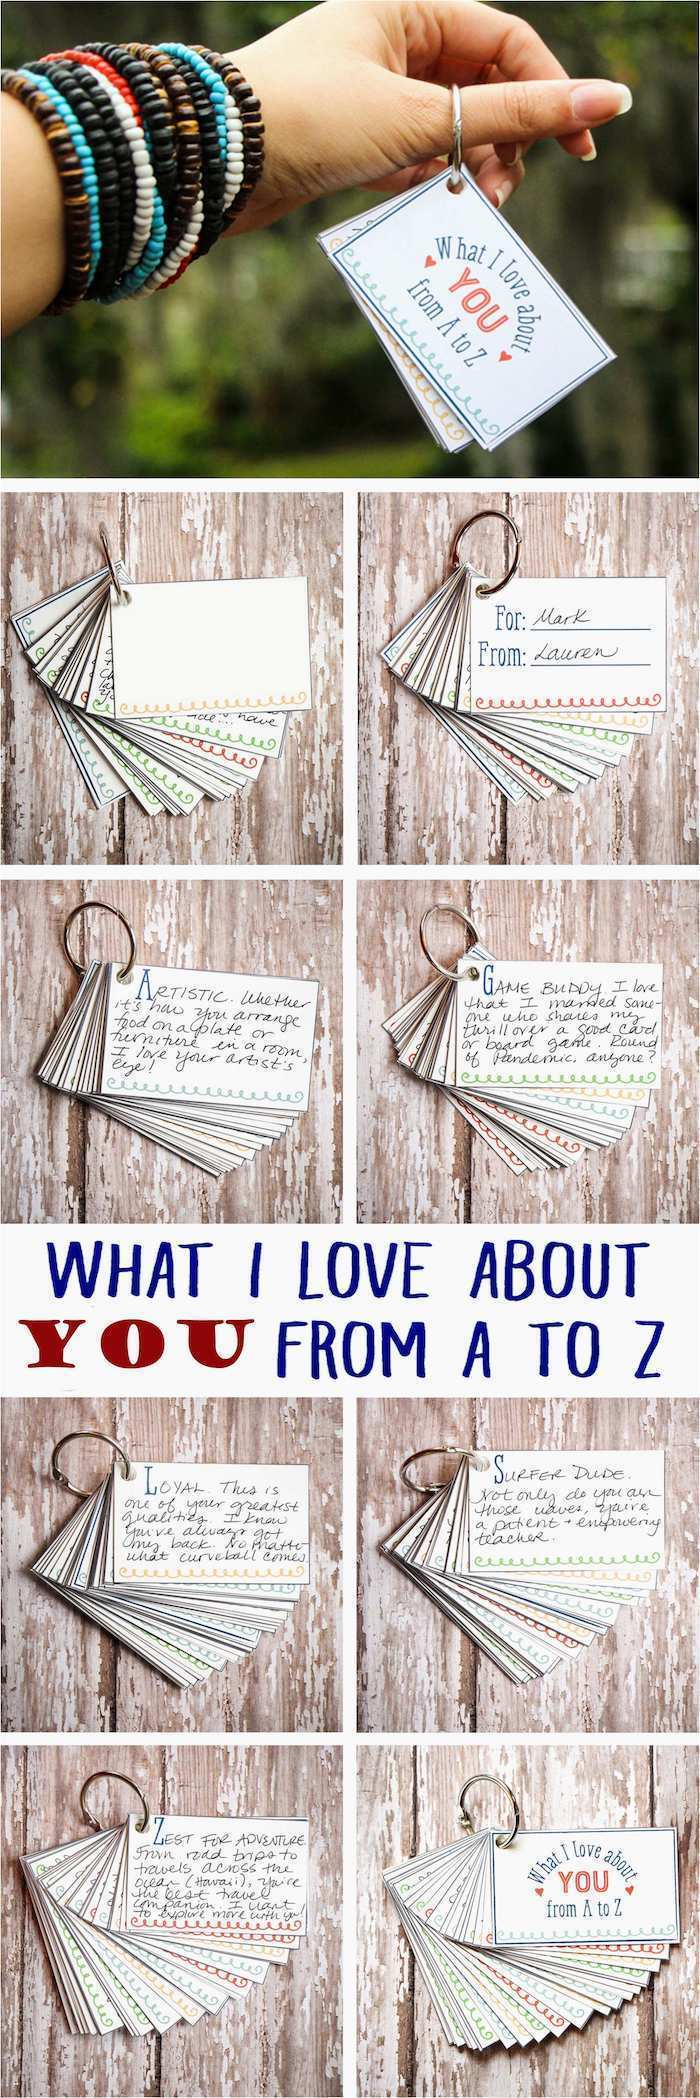 what i love about you, cards with special messages, thoughtful gifts for boyfriend